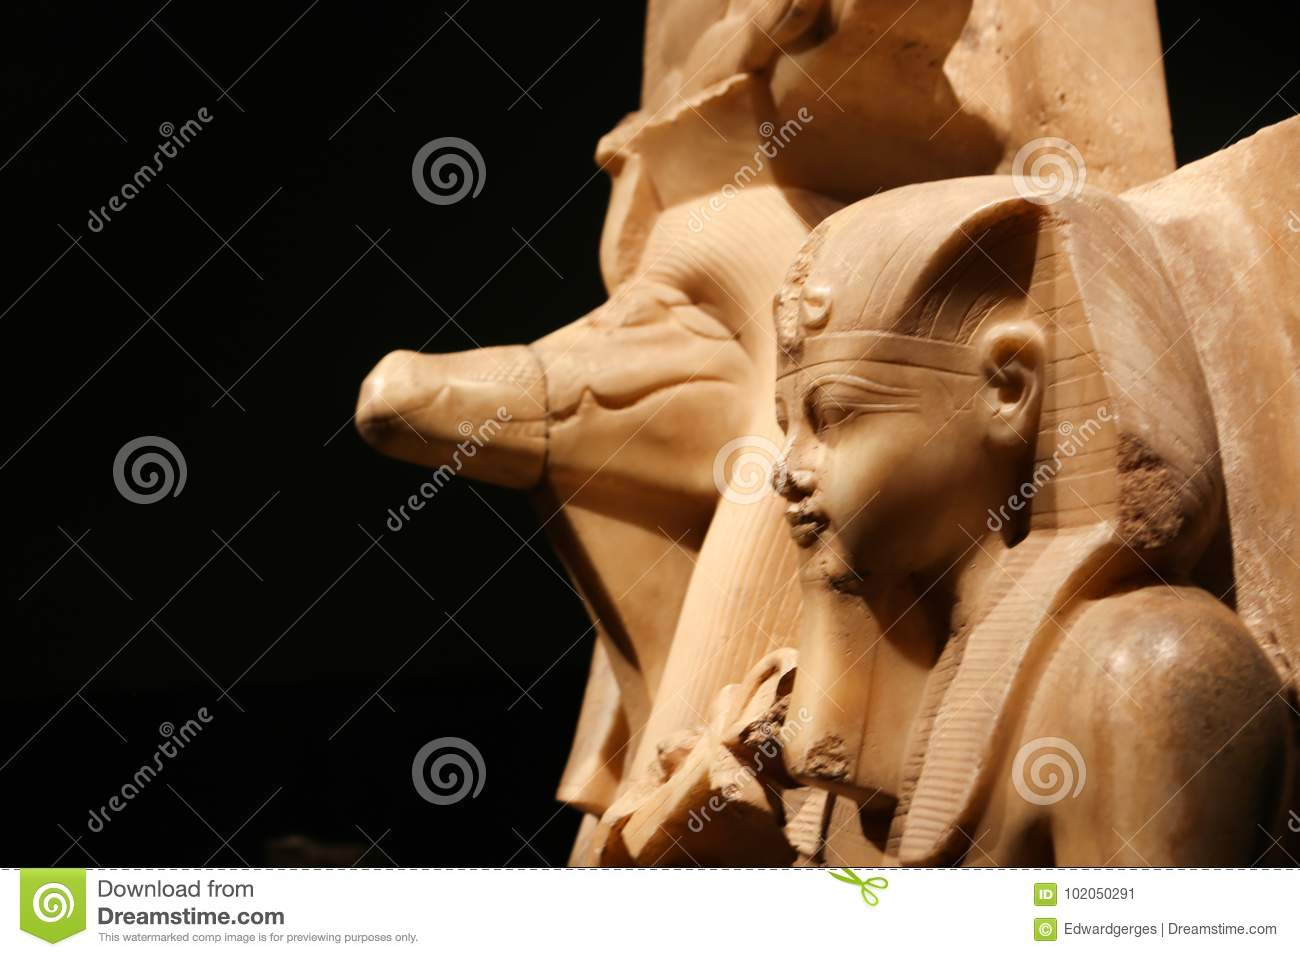 Statue at Luxor Museum - Egypt